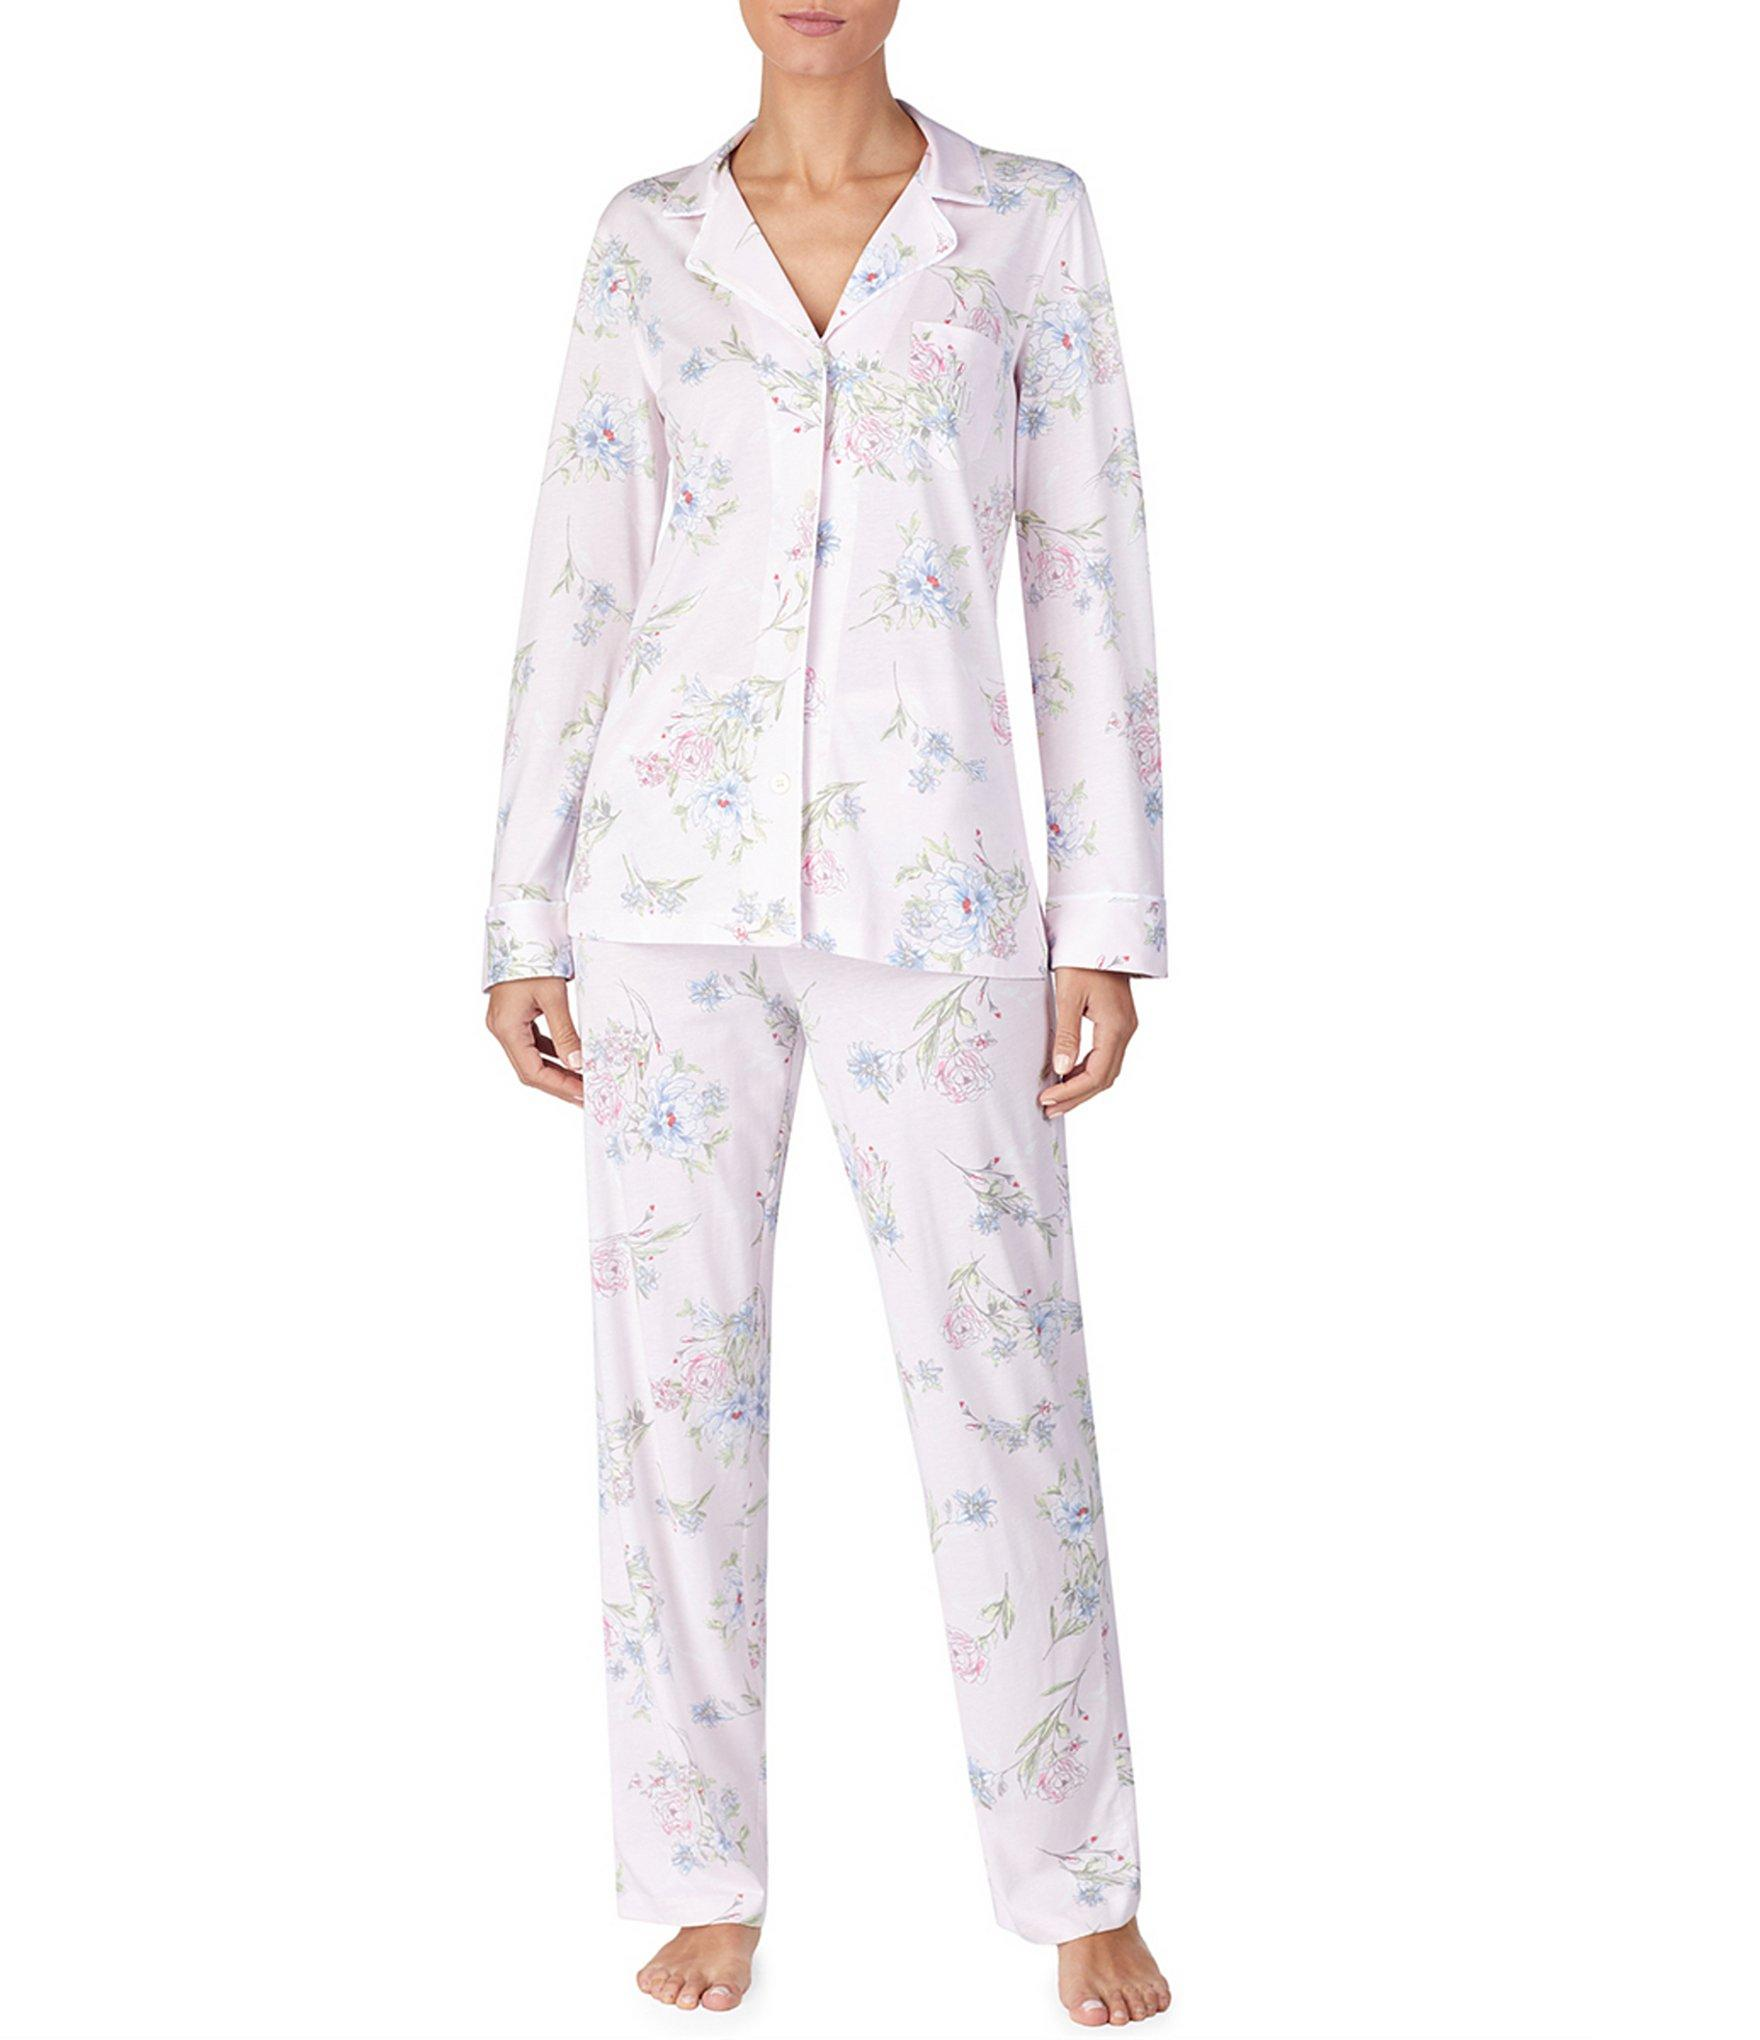 2f4f17f761 Lyst - Lauren By Ralph Lauren Floral-print Jersey Knit Pajama Set in ...